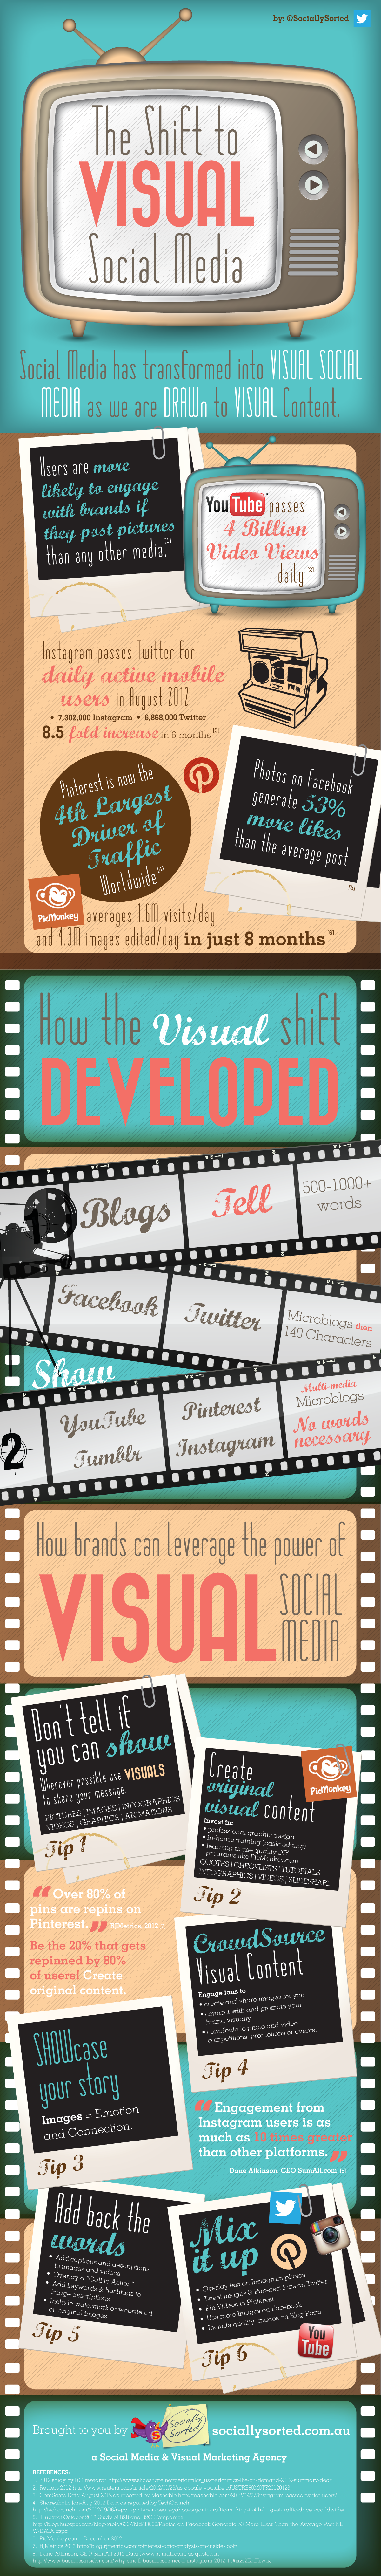 socially sorted visual content infographic